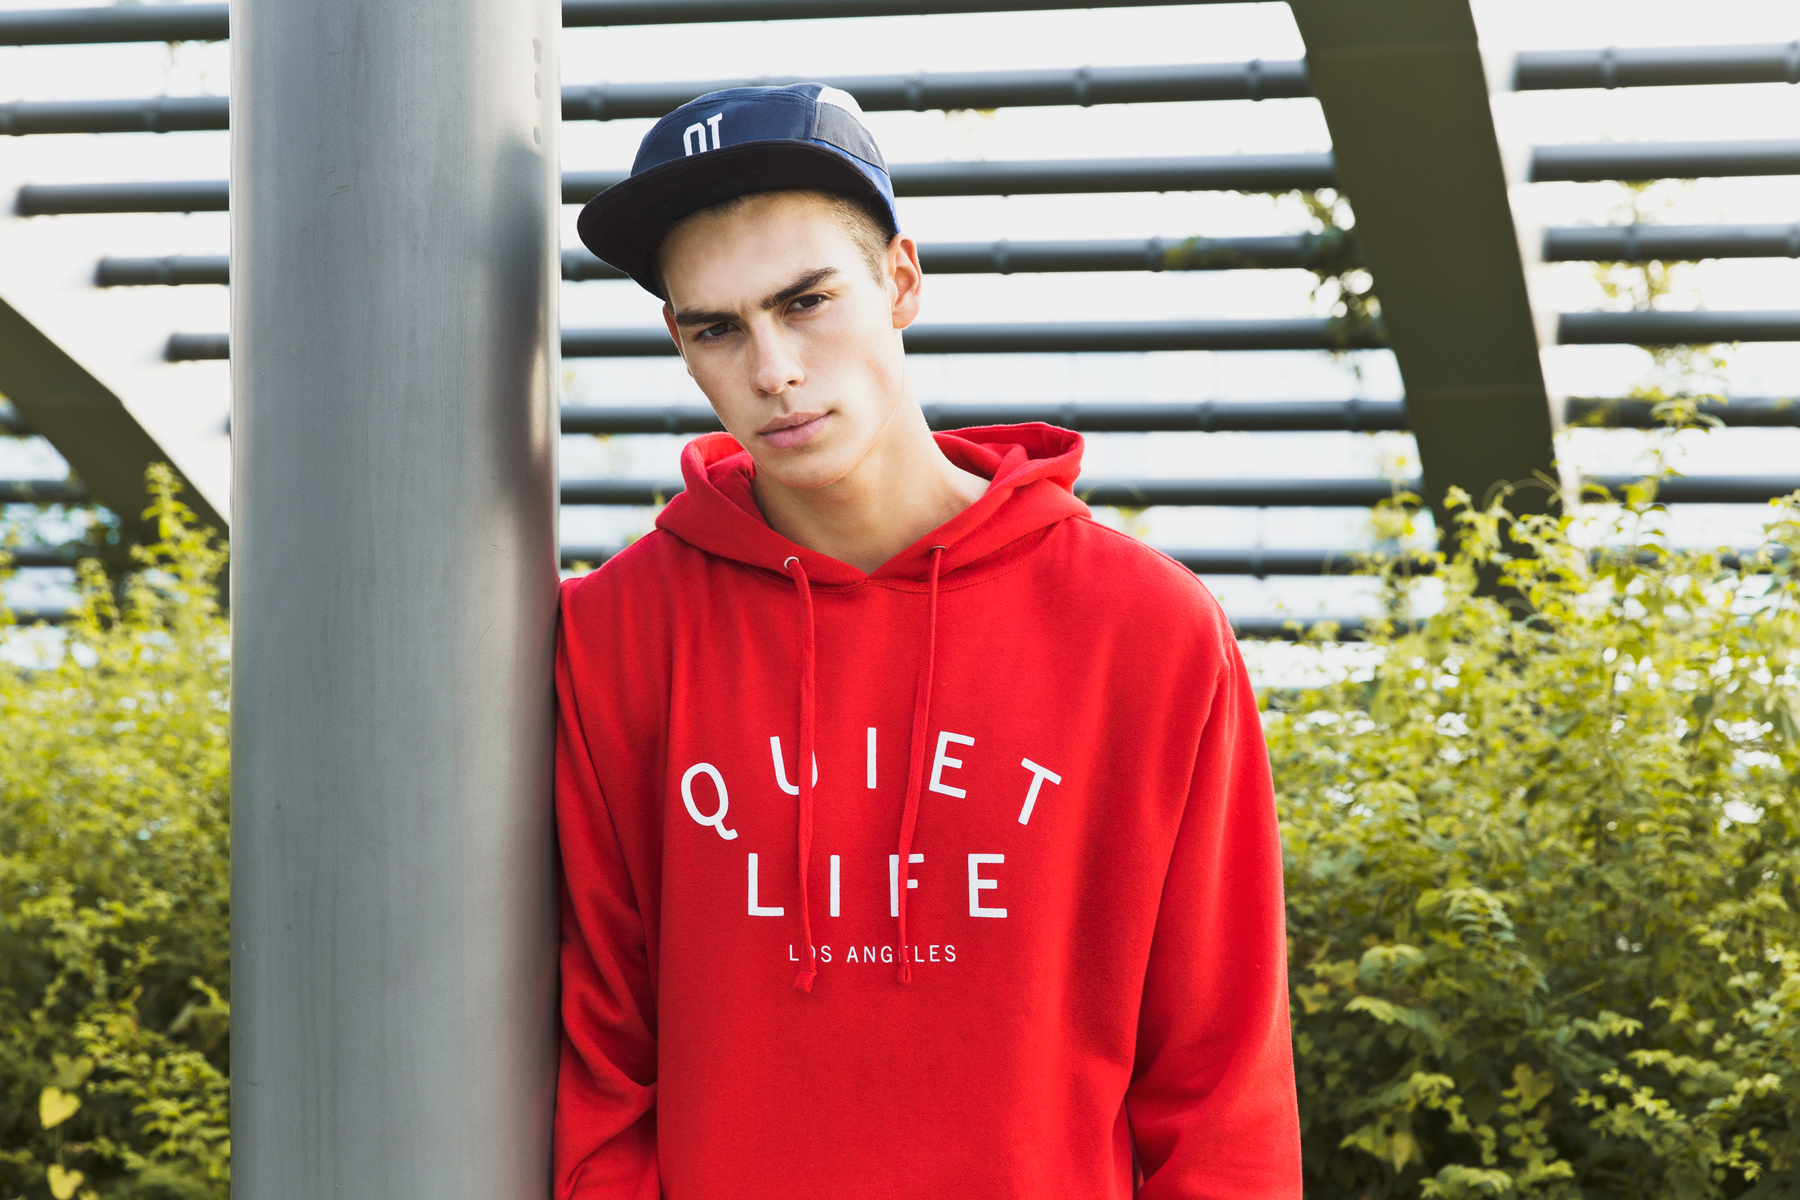 The Quiet Life 2015 Fall/Winter Collection